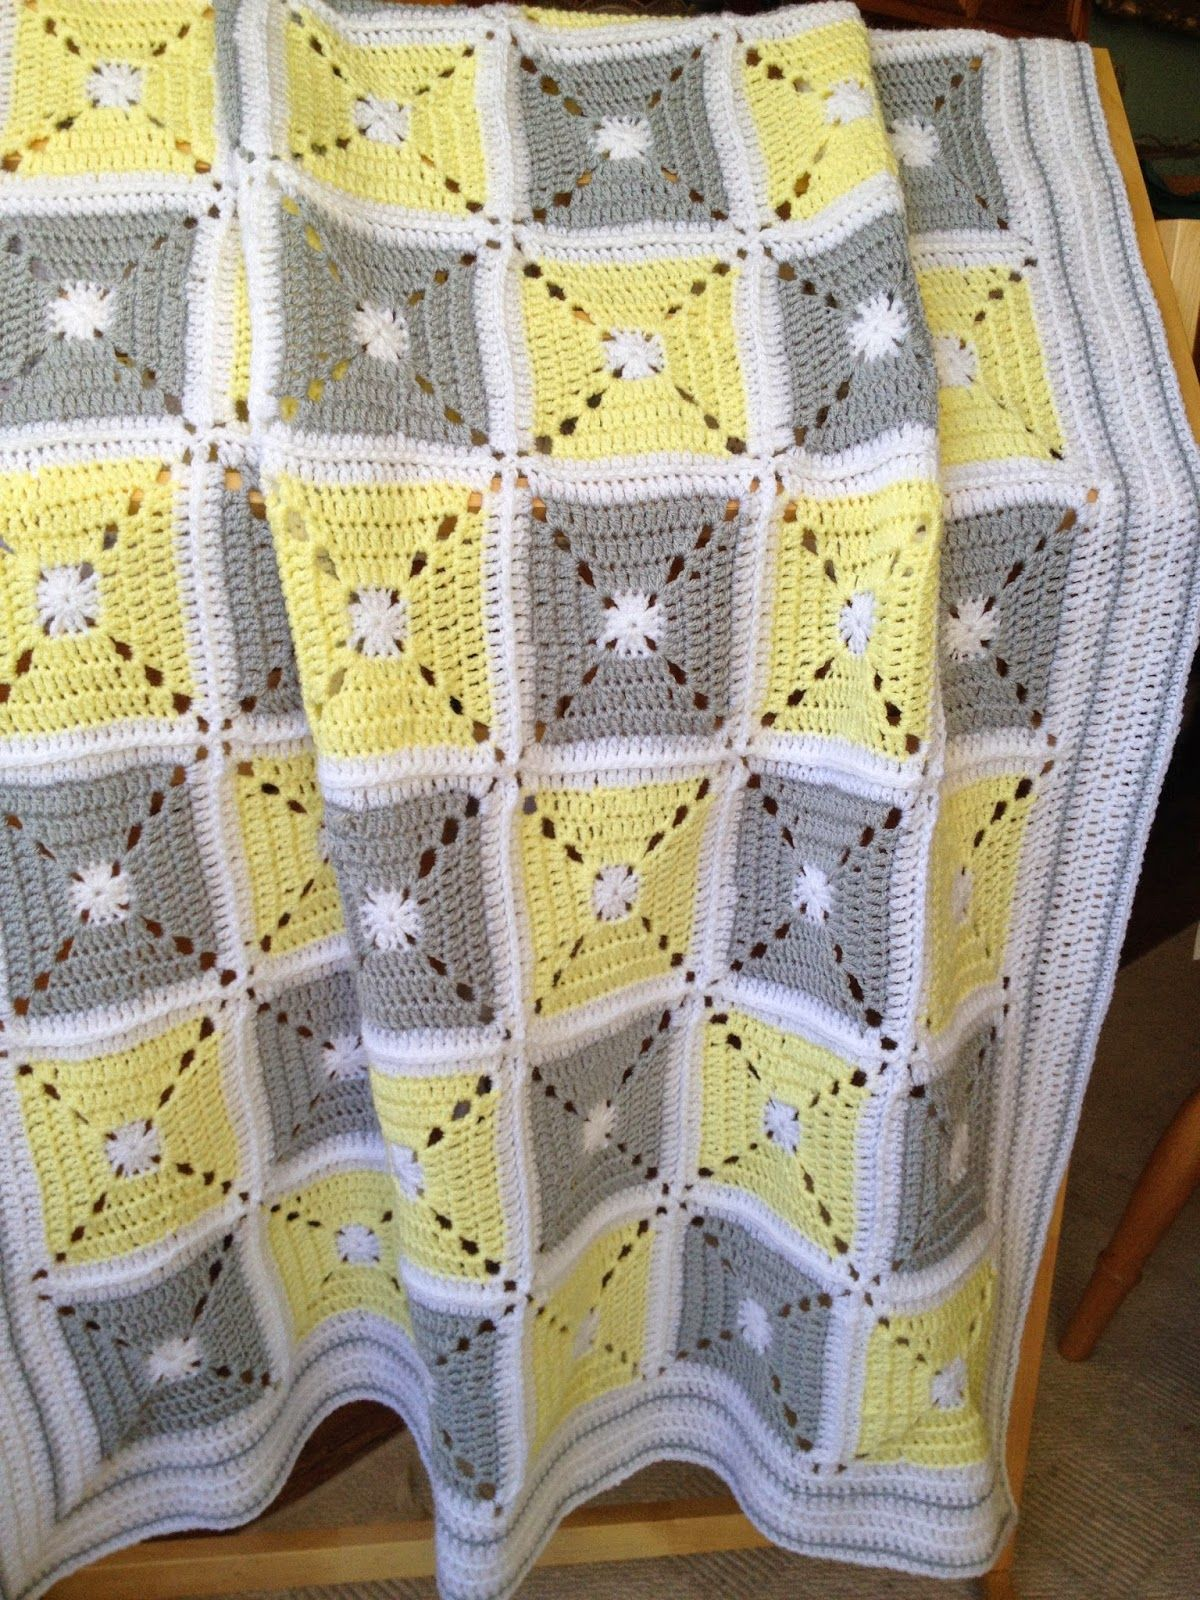 Solid granny square blanket, Stylecraft Special DK, 4.0 mm hook, a ...